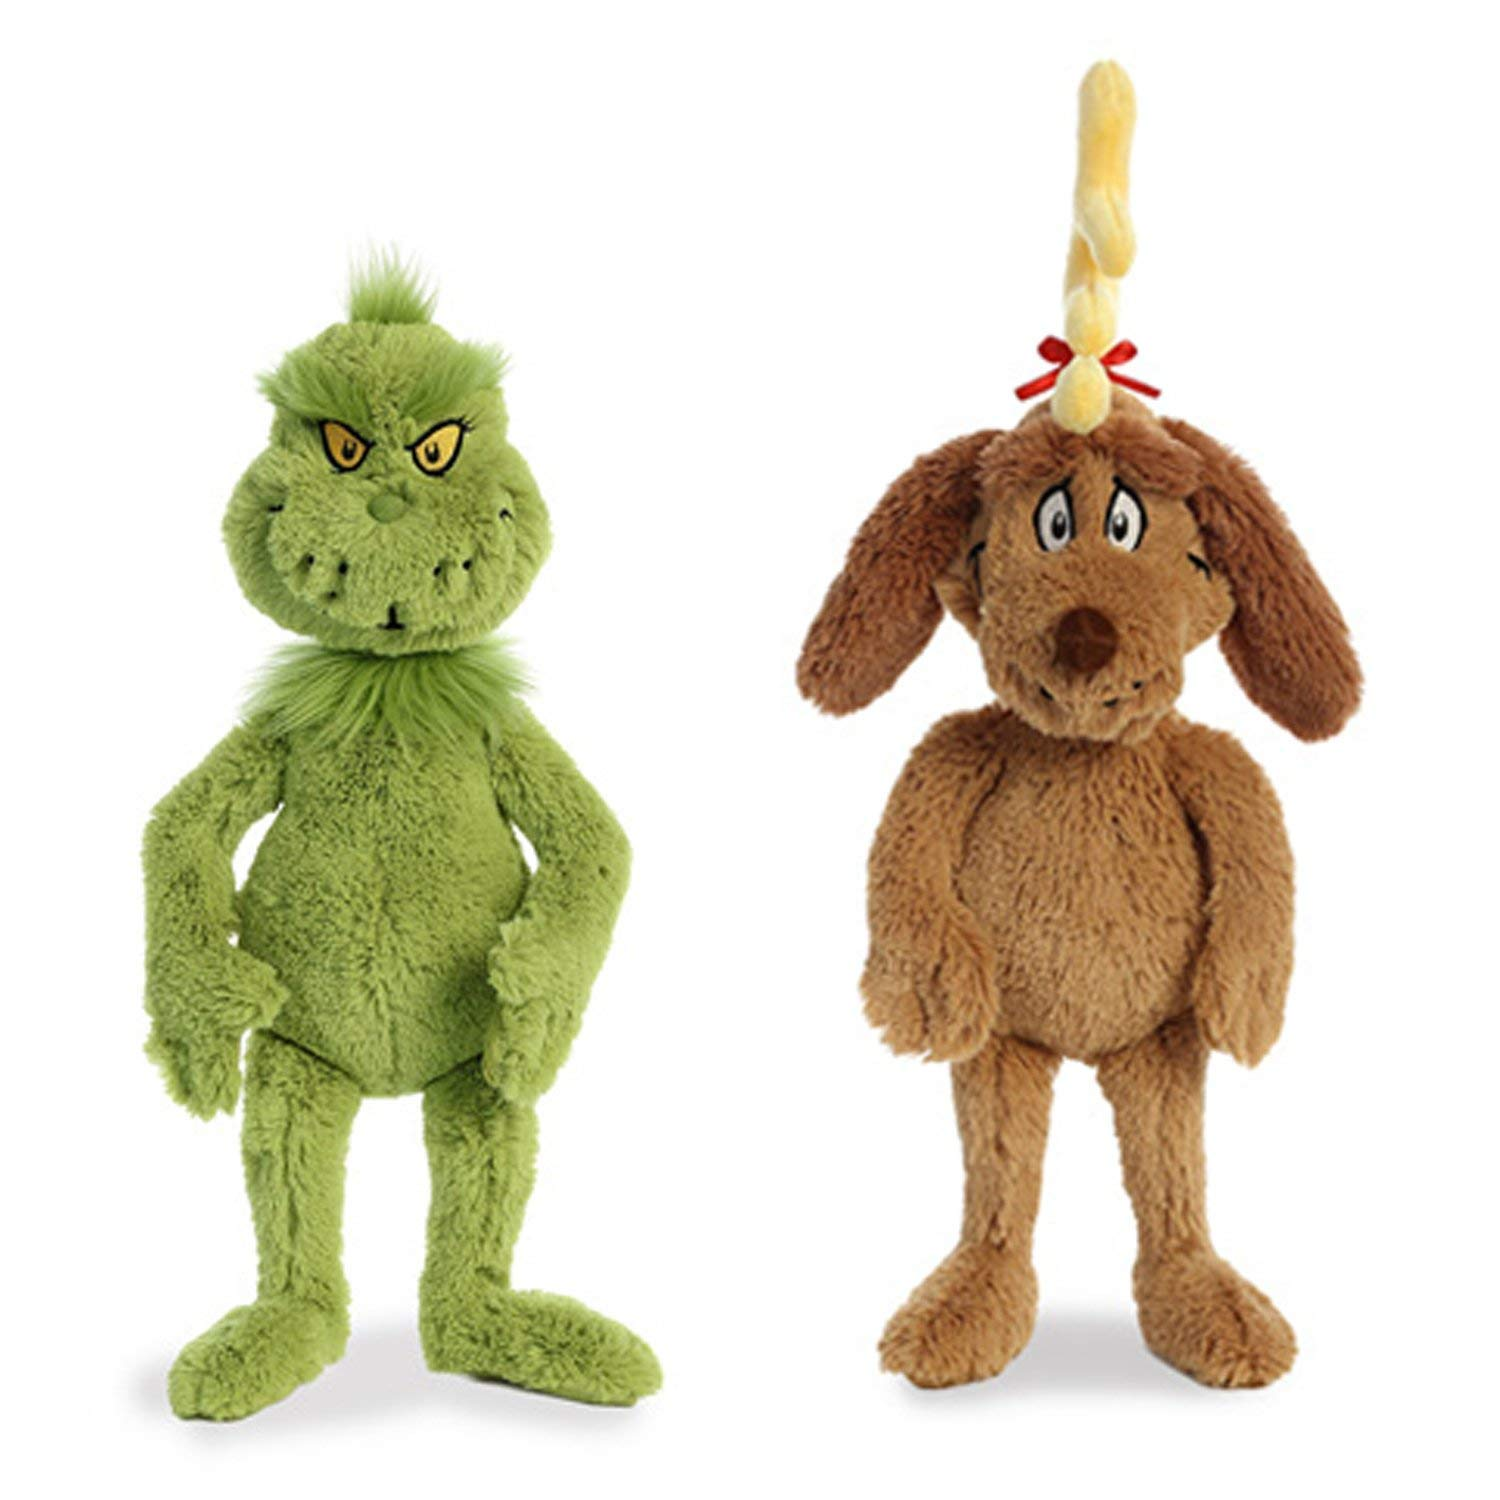 and 18 Max with Antler 18 Grinch and 18 Max with Antler SG/_B07F8F1377/_US Aurora World Plush Bundle of 2 18 Grinch